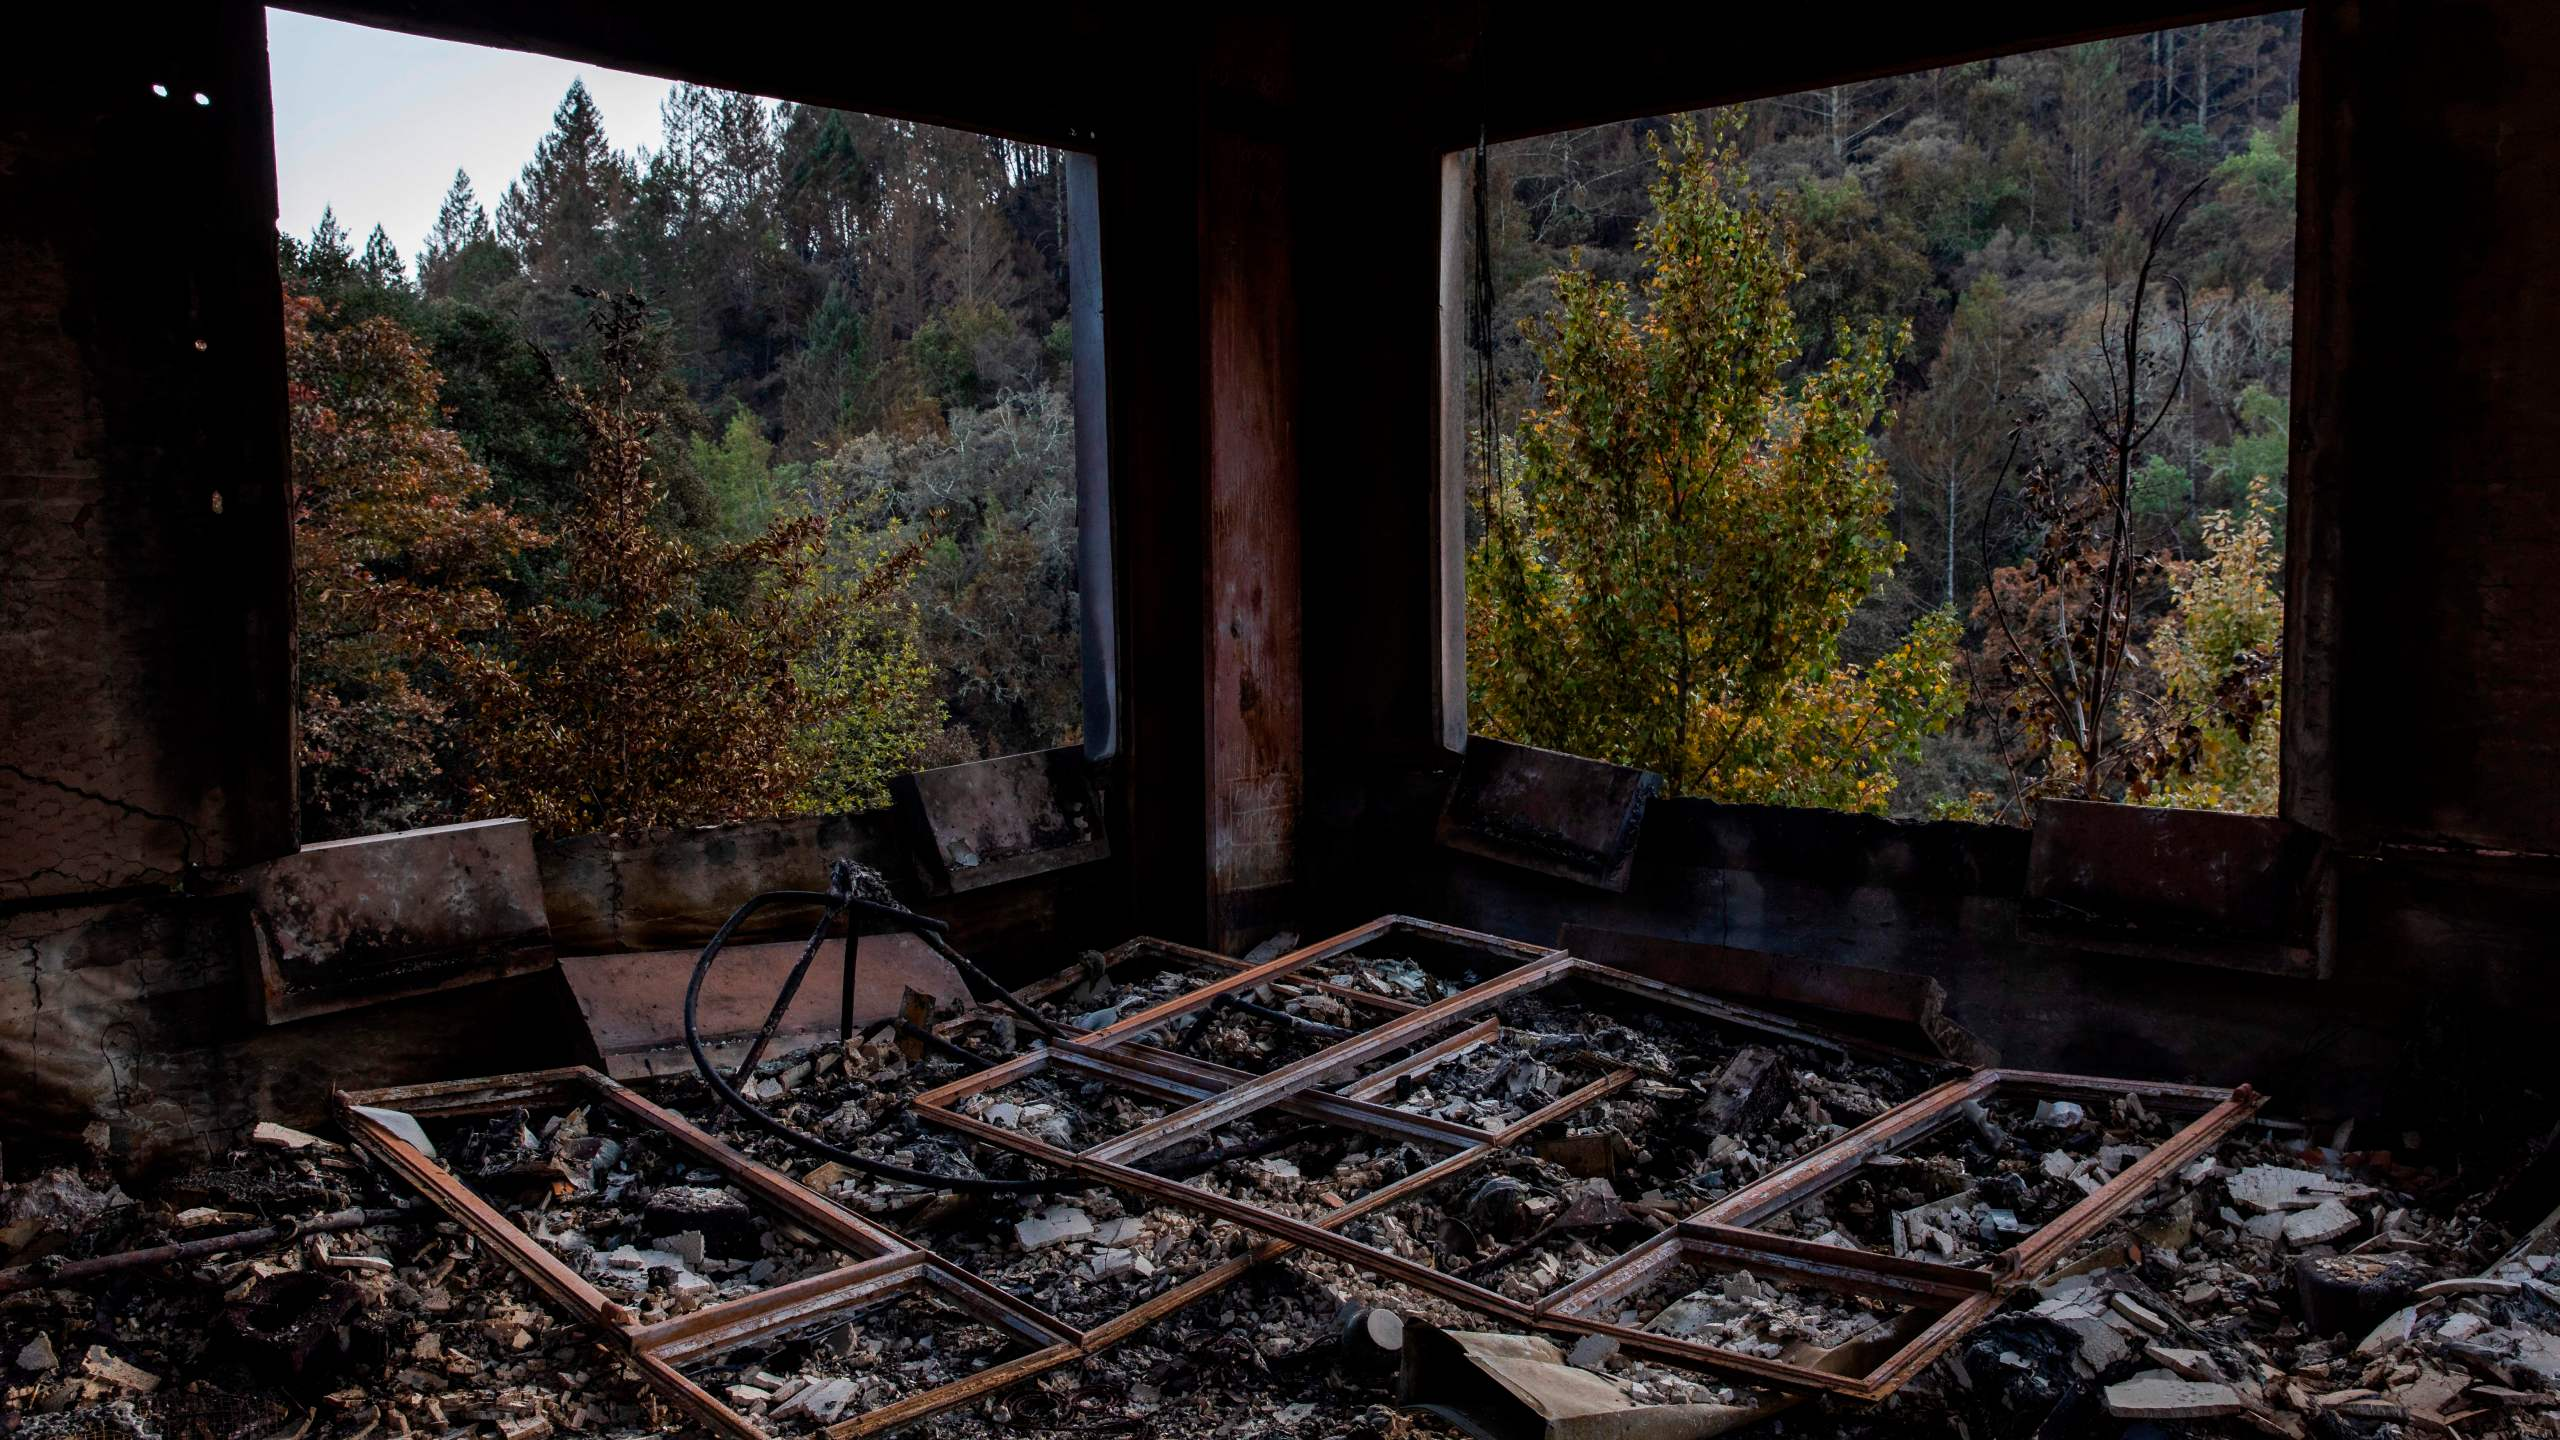 Window panes lay on the floor of a structure devastated by the Kincade Fire in Kellogg on Oct. 31, 2019. (Credit: Philip Pacheco / AFP / Getty Images)